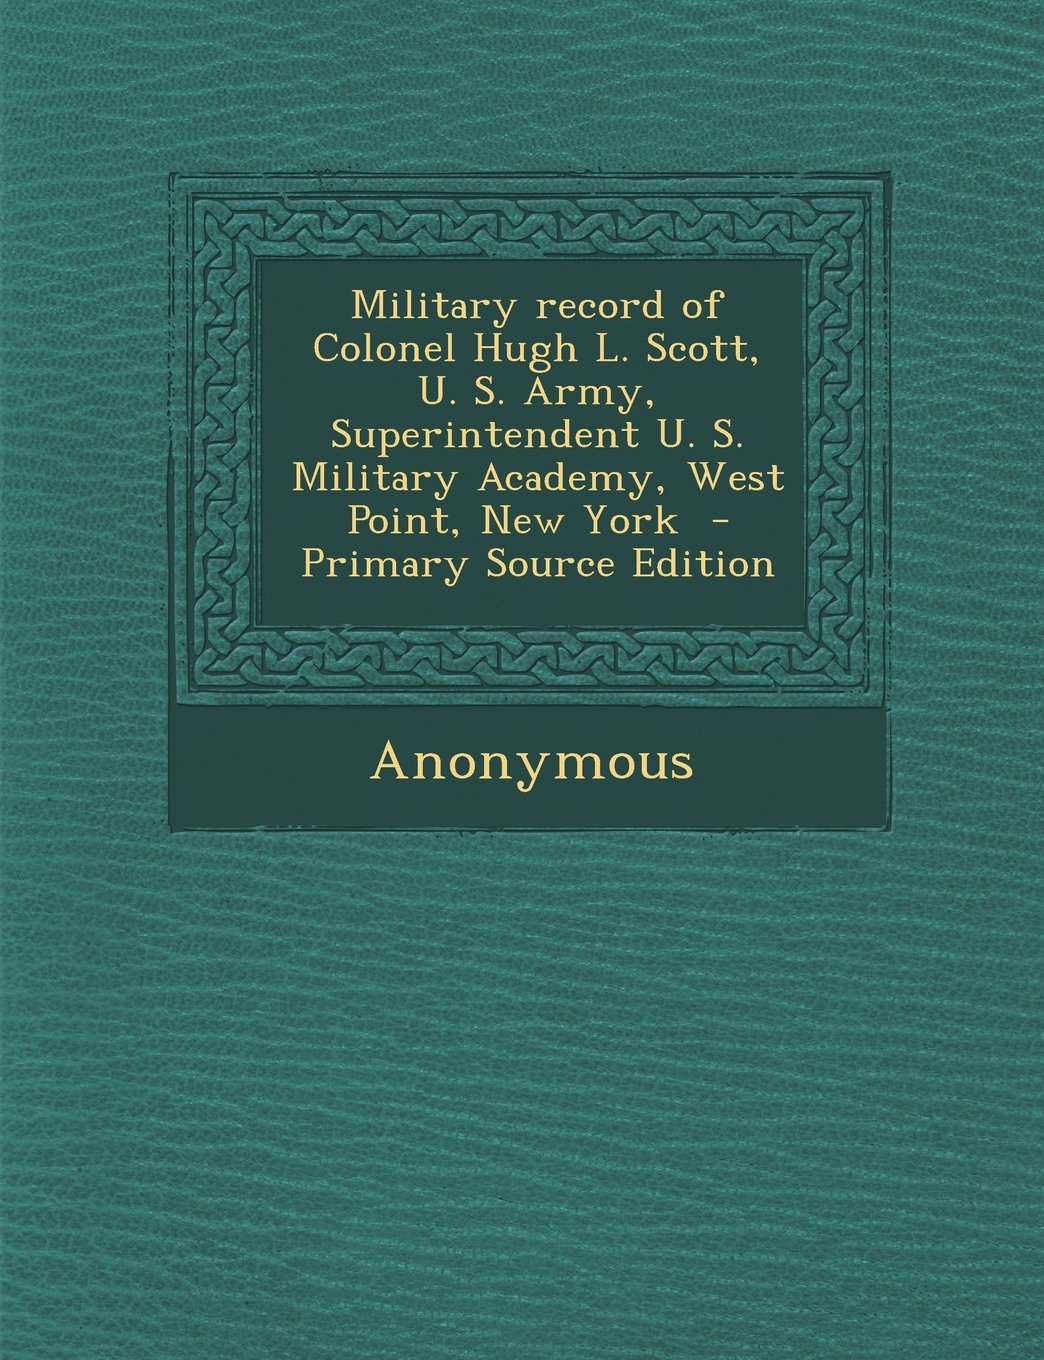 Read Online Military Record of Colonel Hugh L. Scott, U. S. Army, Superintendent U. S. Military Academy, West Point, New York - Primary Source Edition PDF